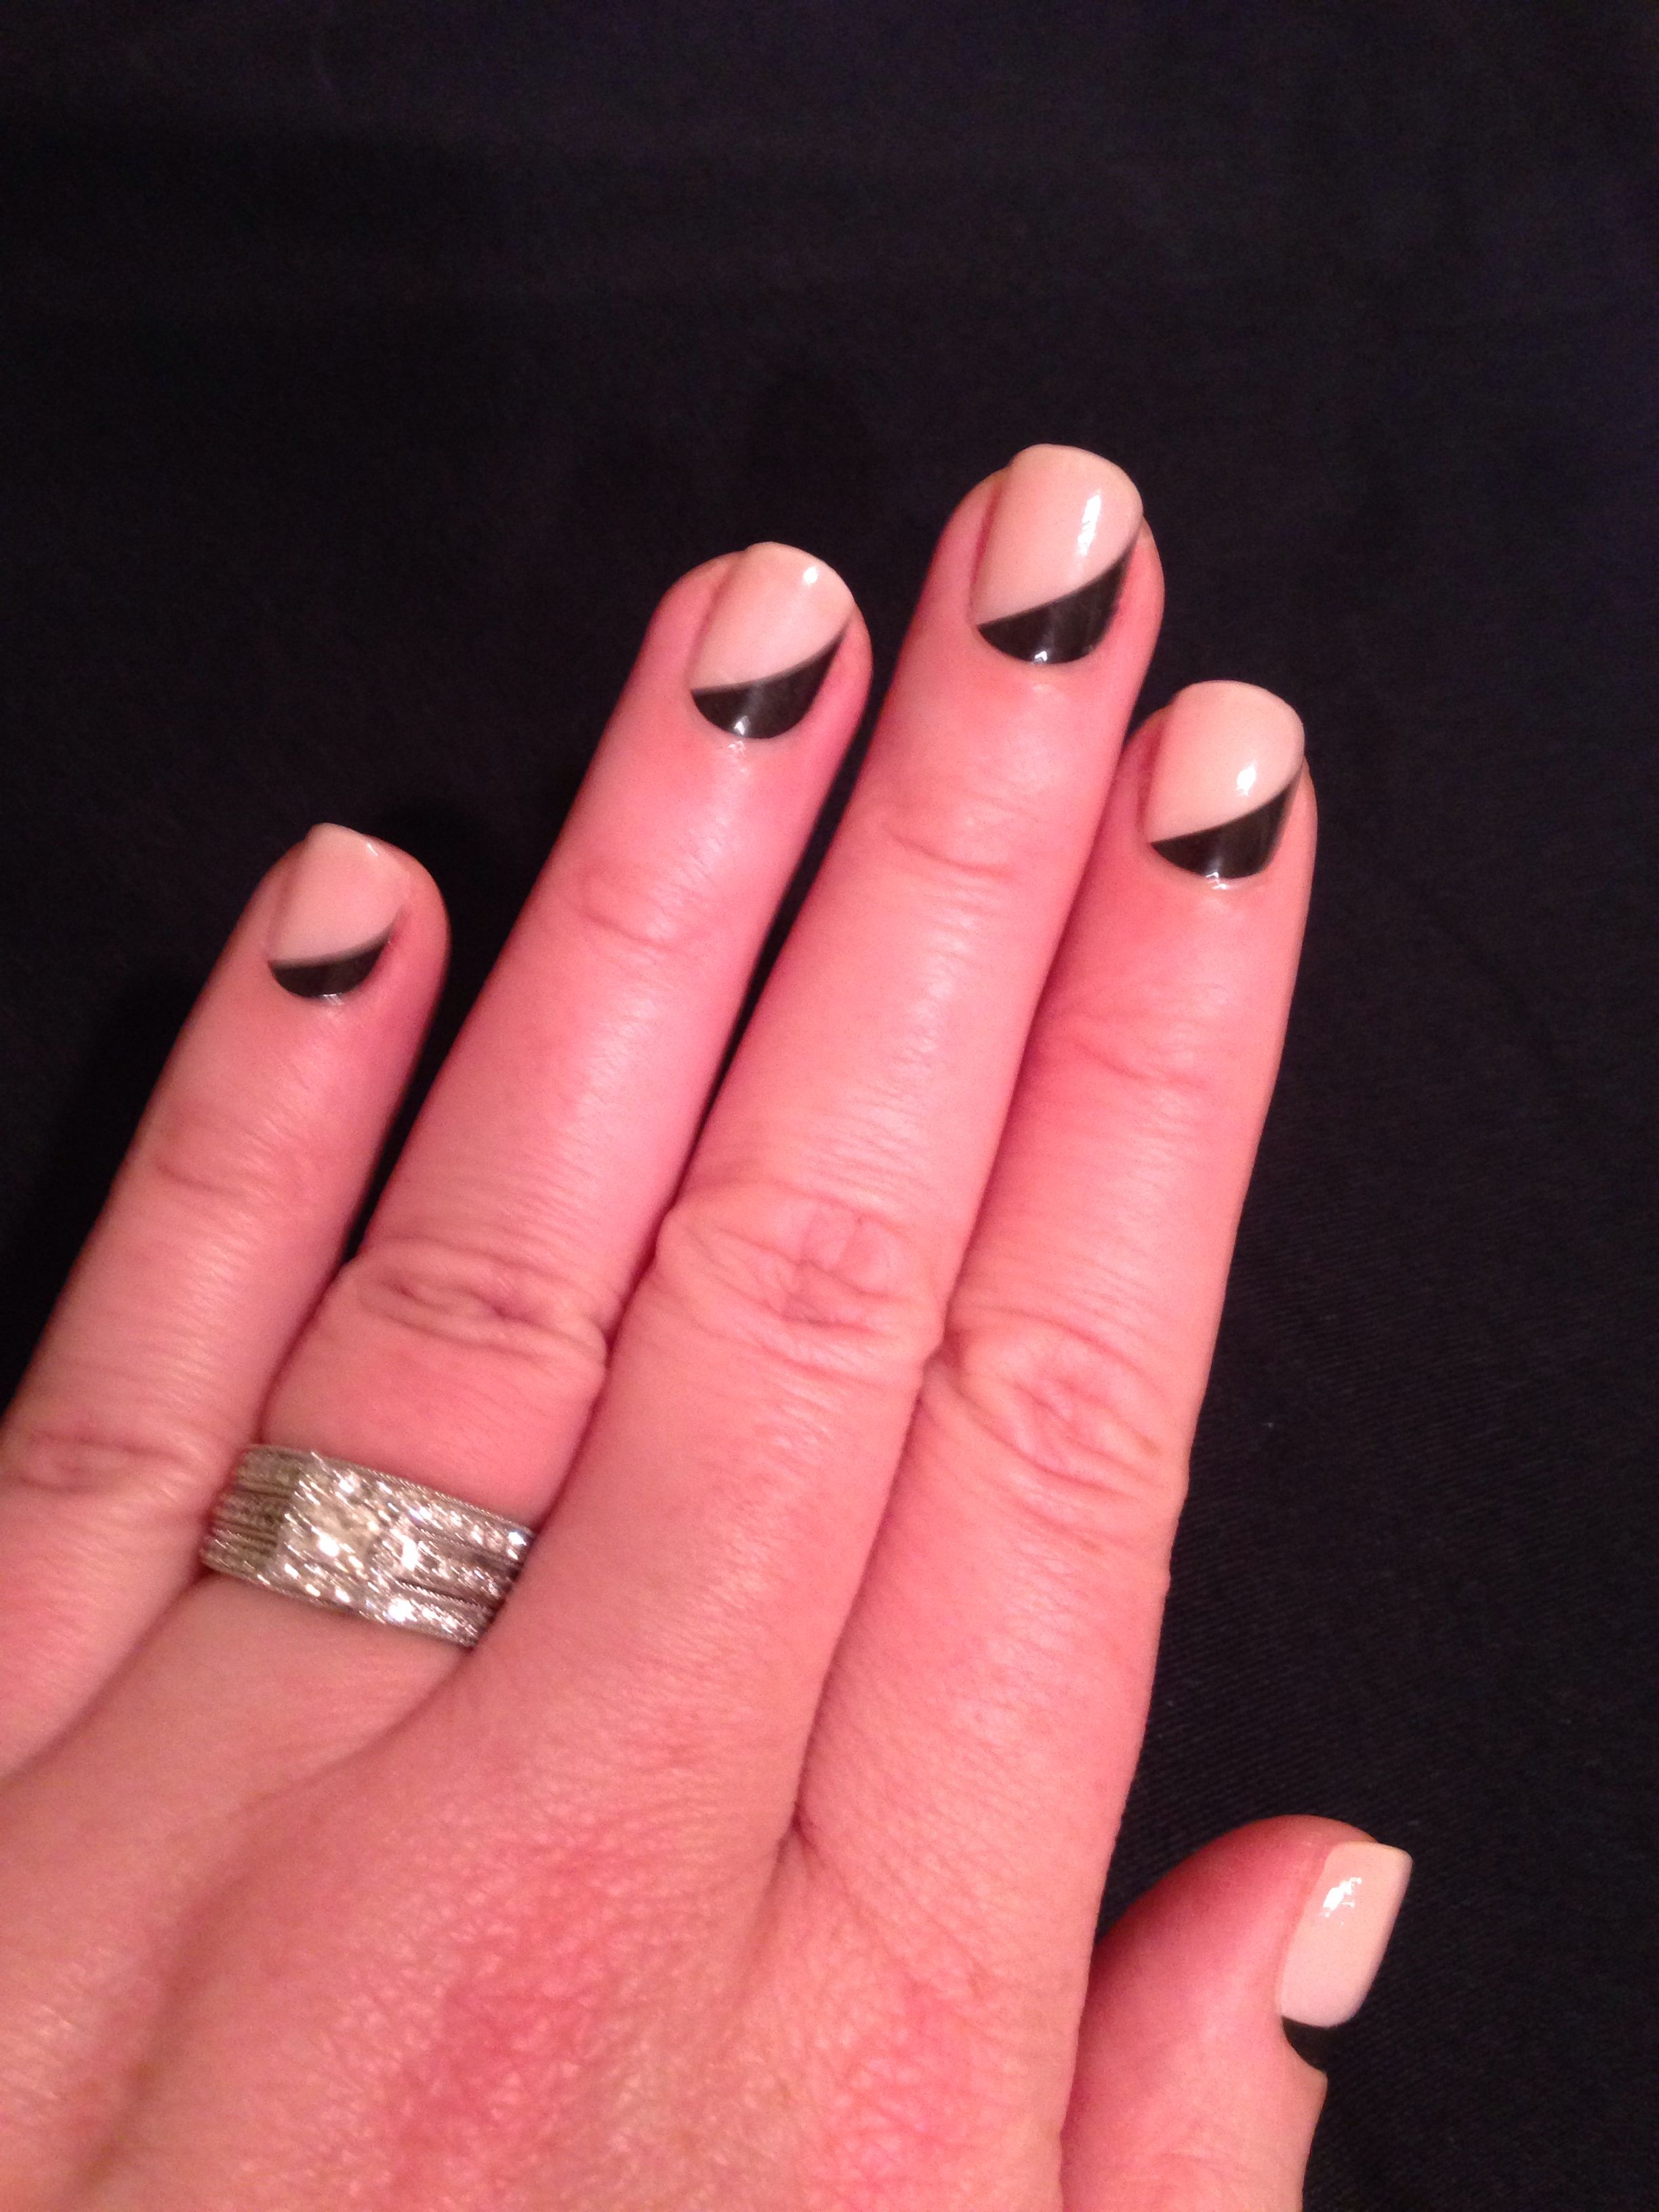 My reverse French nails | Nails | Pinterest | Reverse french nails ...